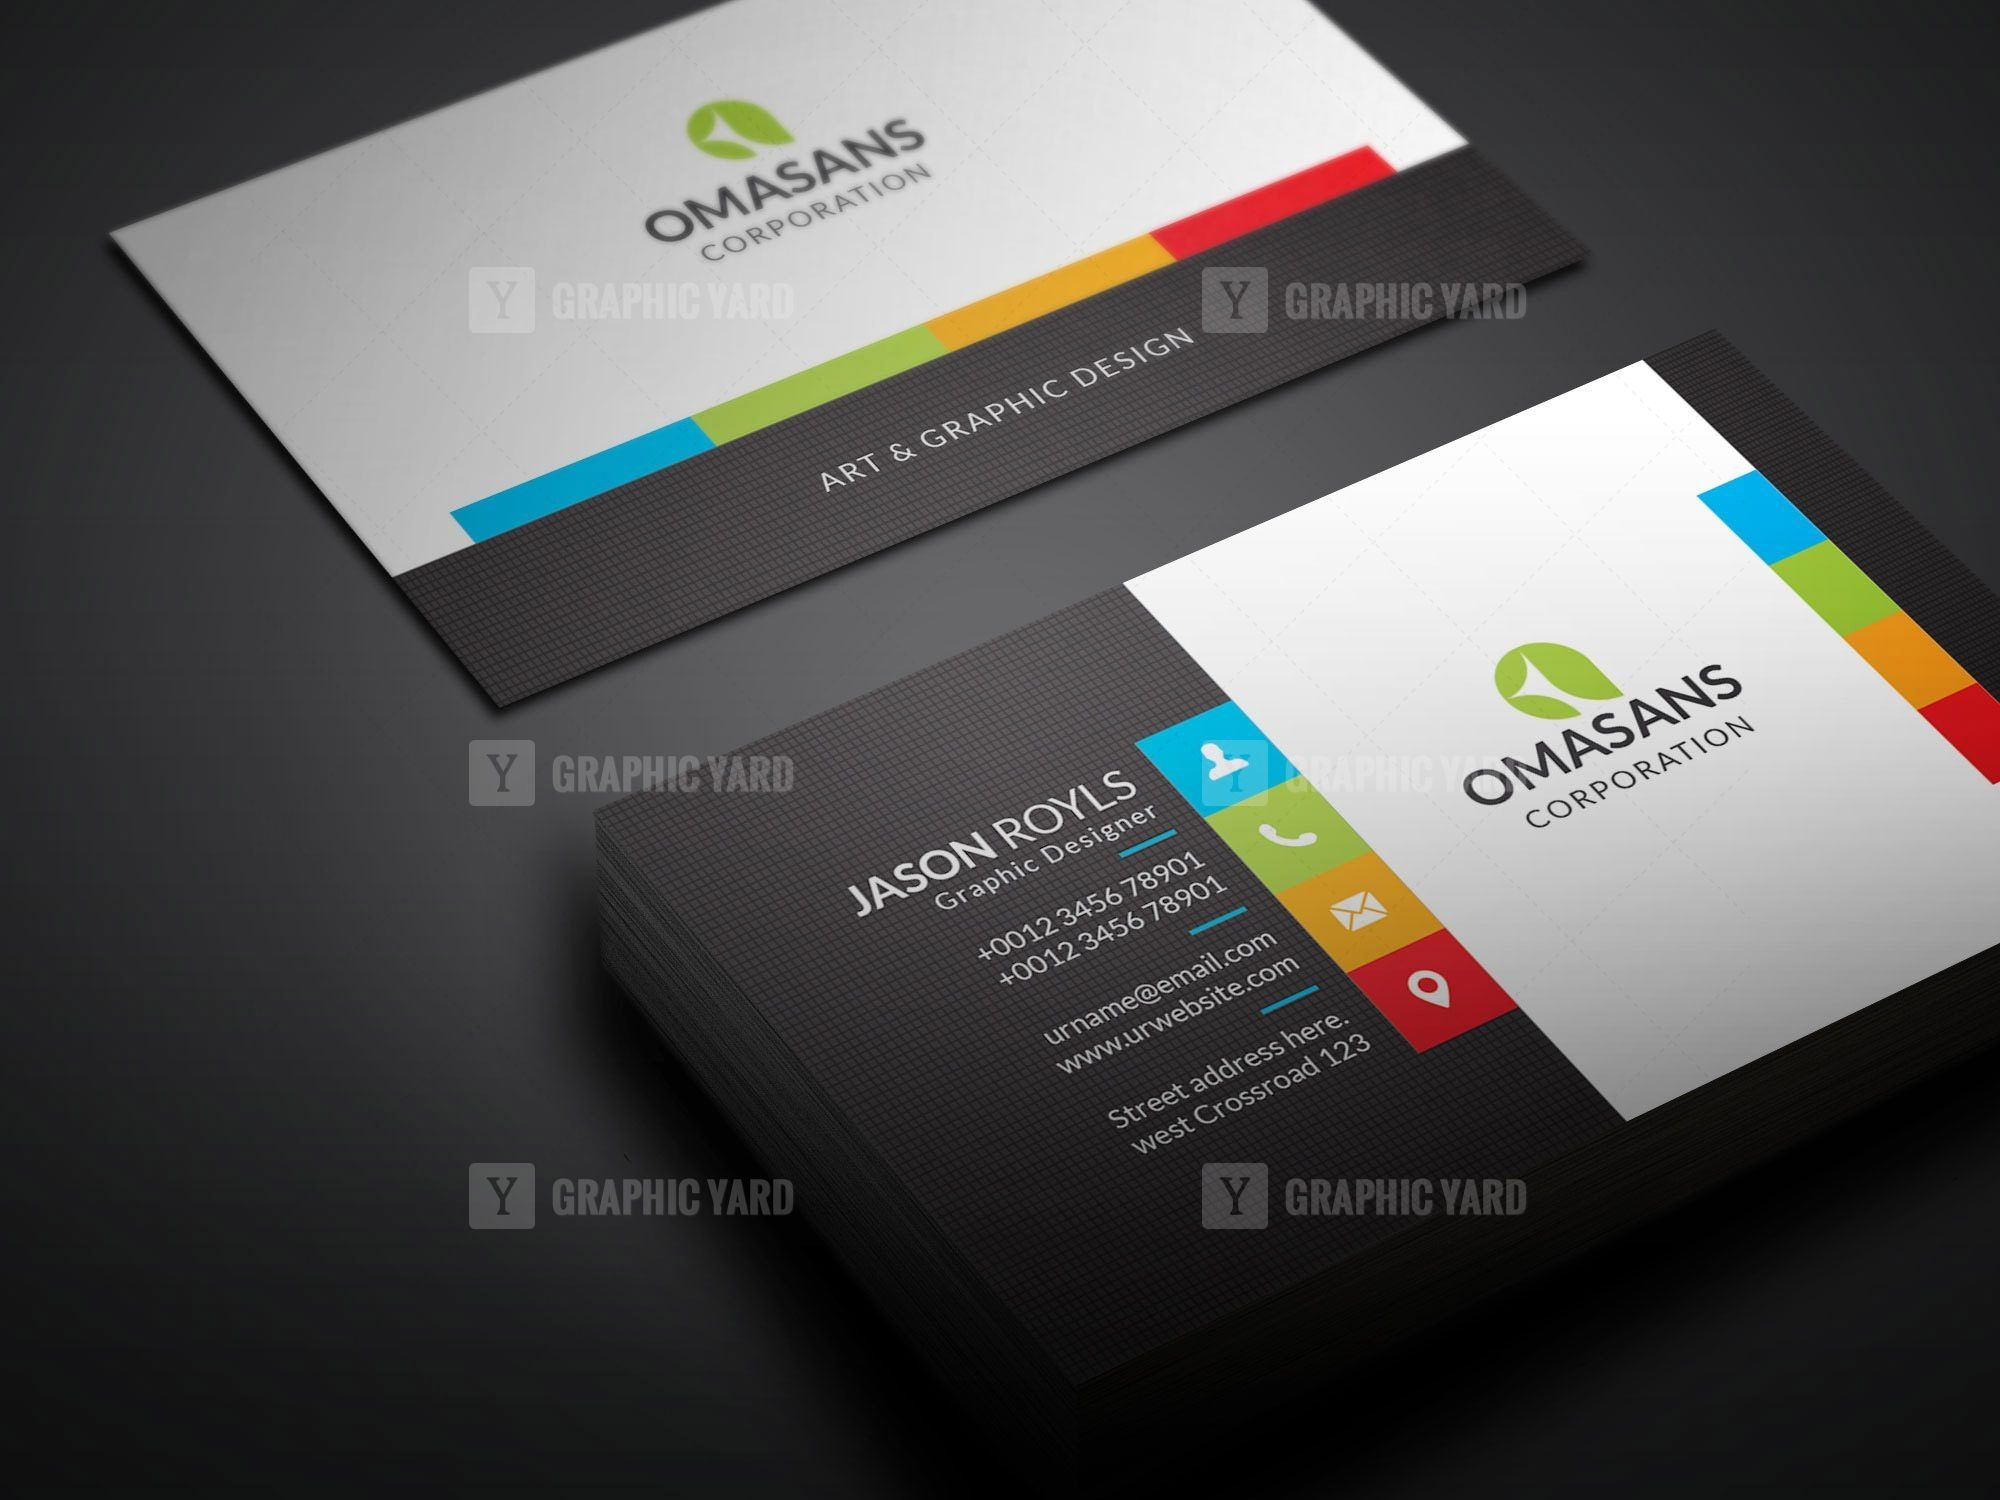 Psd Colorful Business Card Design Graphic Yard Graphic Templates Store Business Card Design Colorful Business Card Design Colorful Business Card